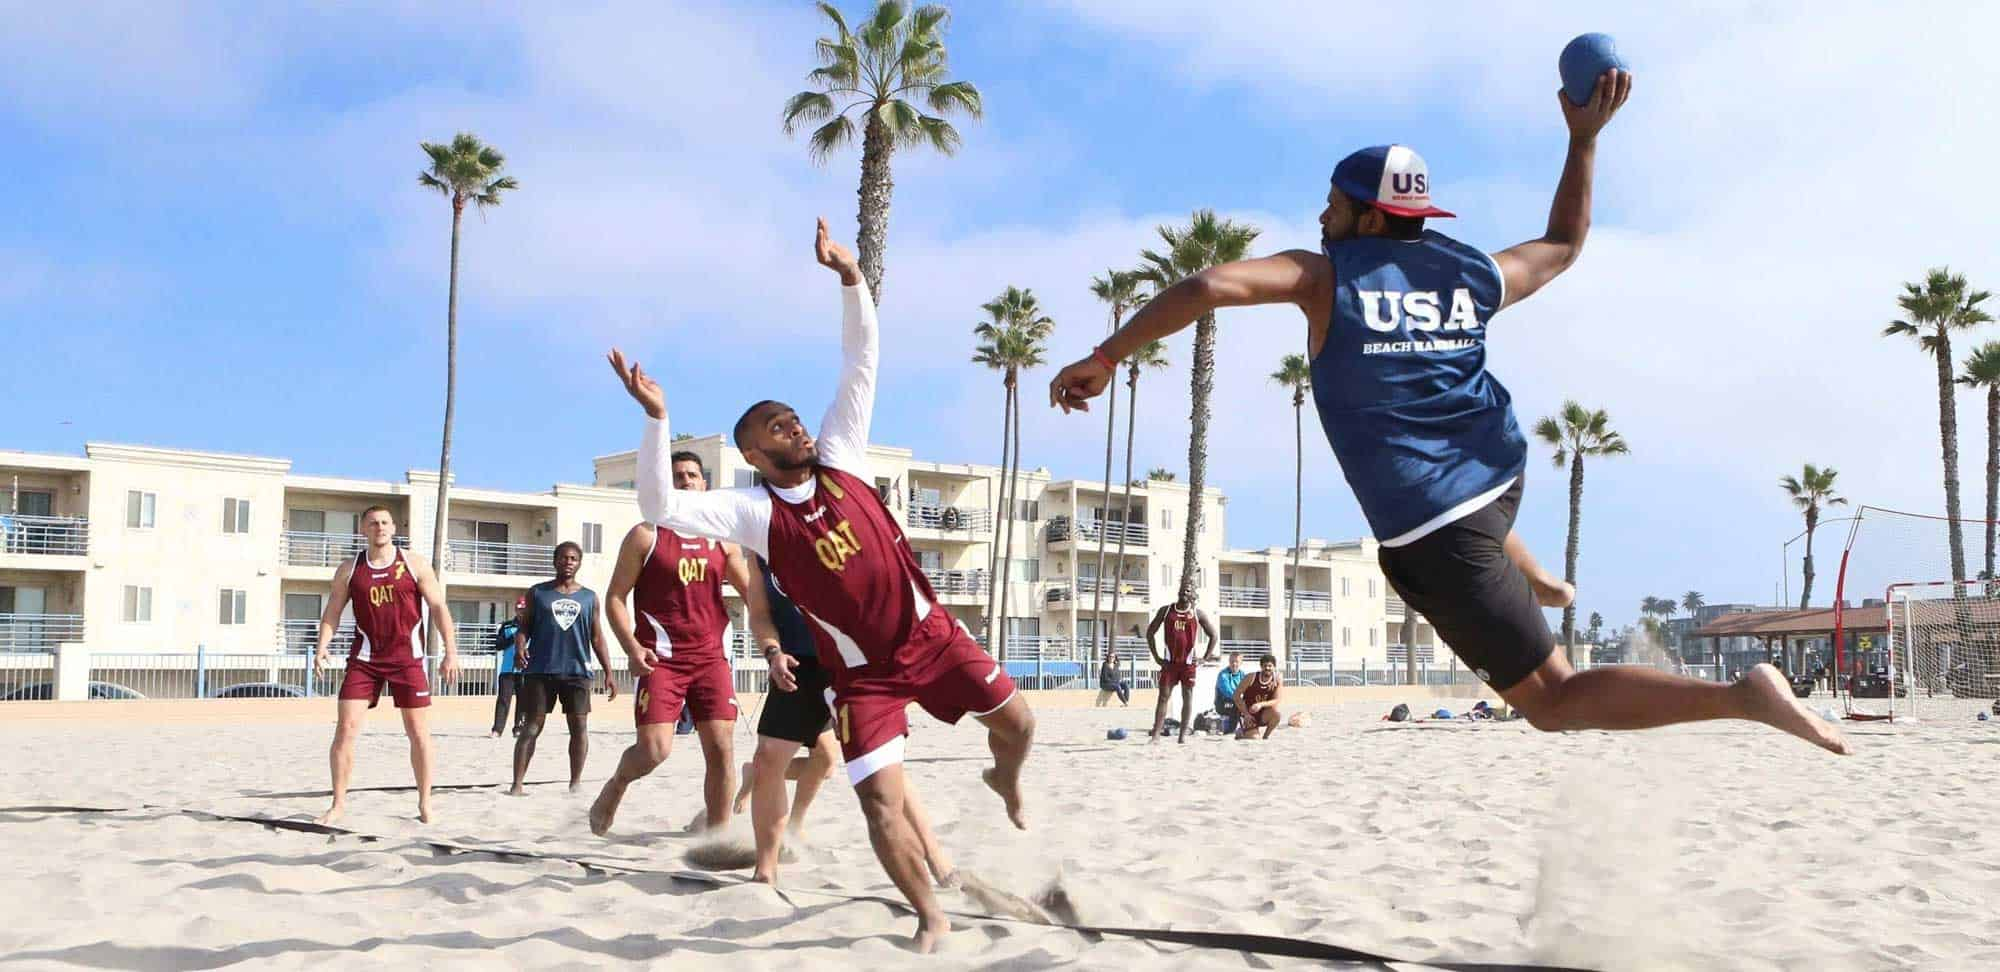 7 things you need to know about beach handball visit oceanside